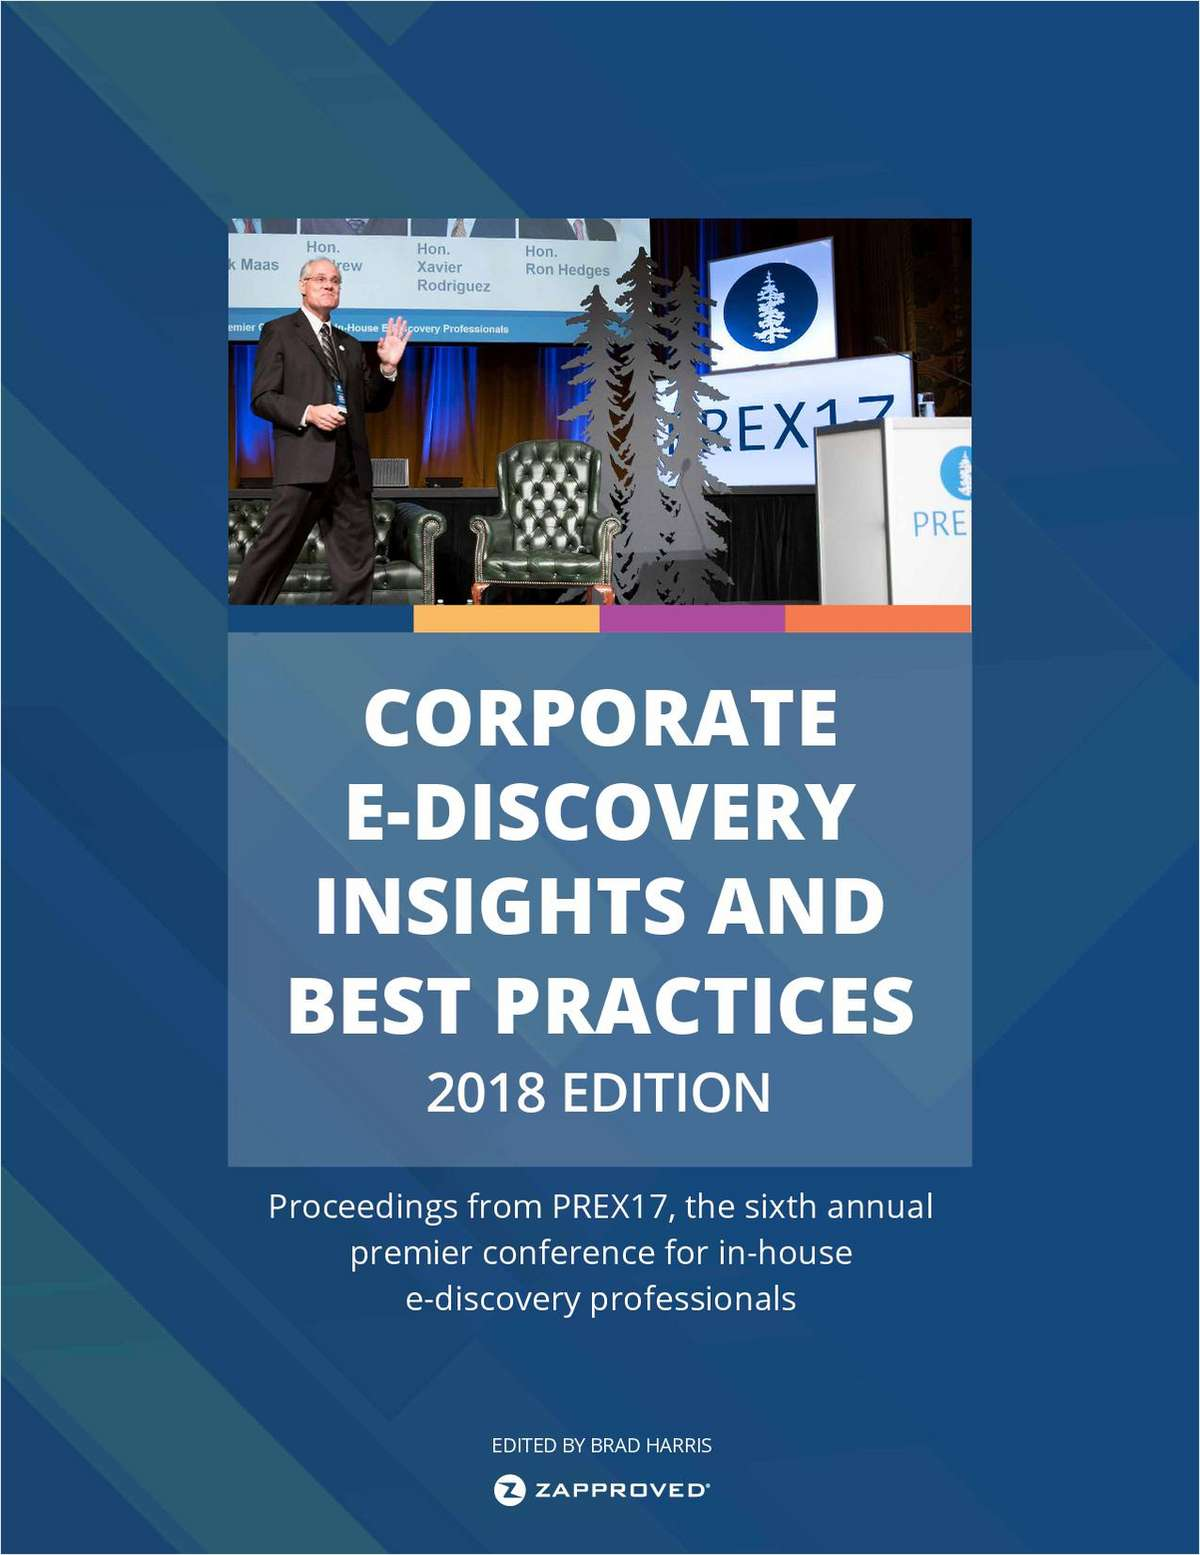 2018 Strategies and E-Discovery Best Practices from PREX17